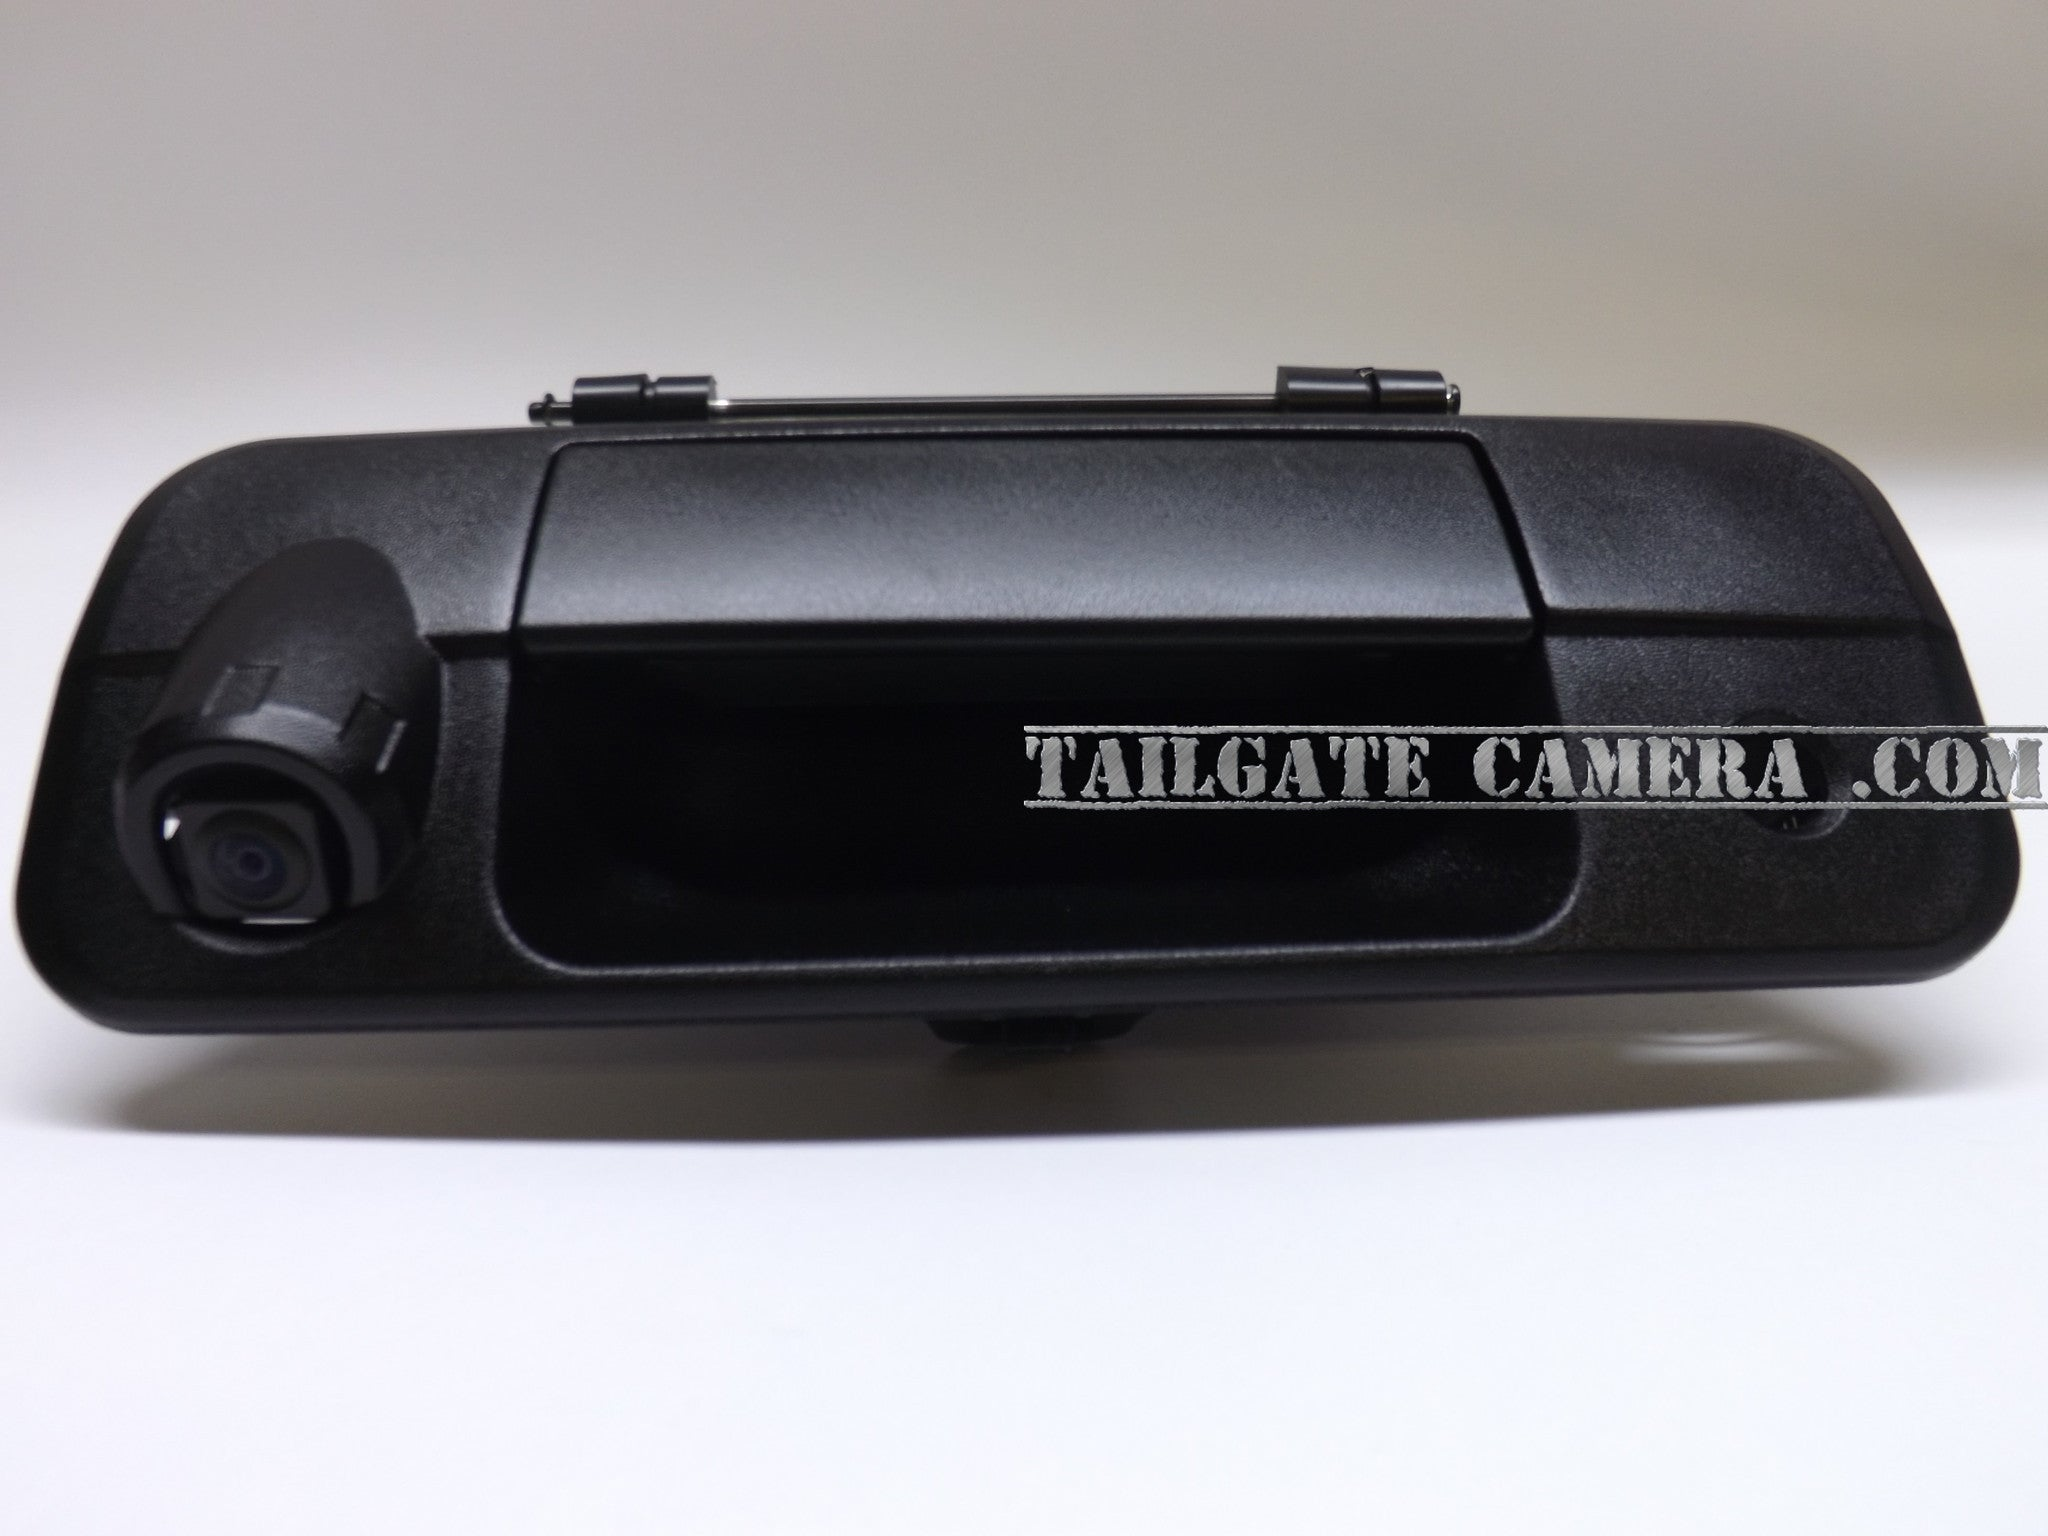 2007-2013 Toyota Tundra Tailgate Handle Rear view/Back Up Camera with Night Vision and Parking Guidance Lines - Backup Camera